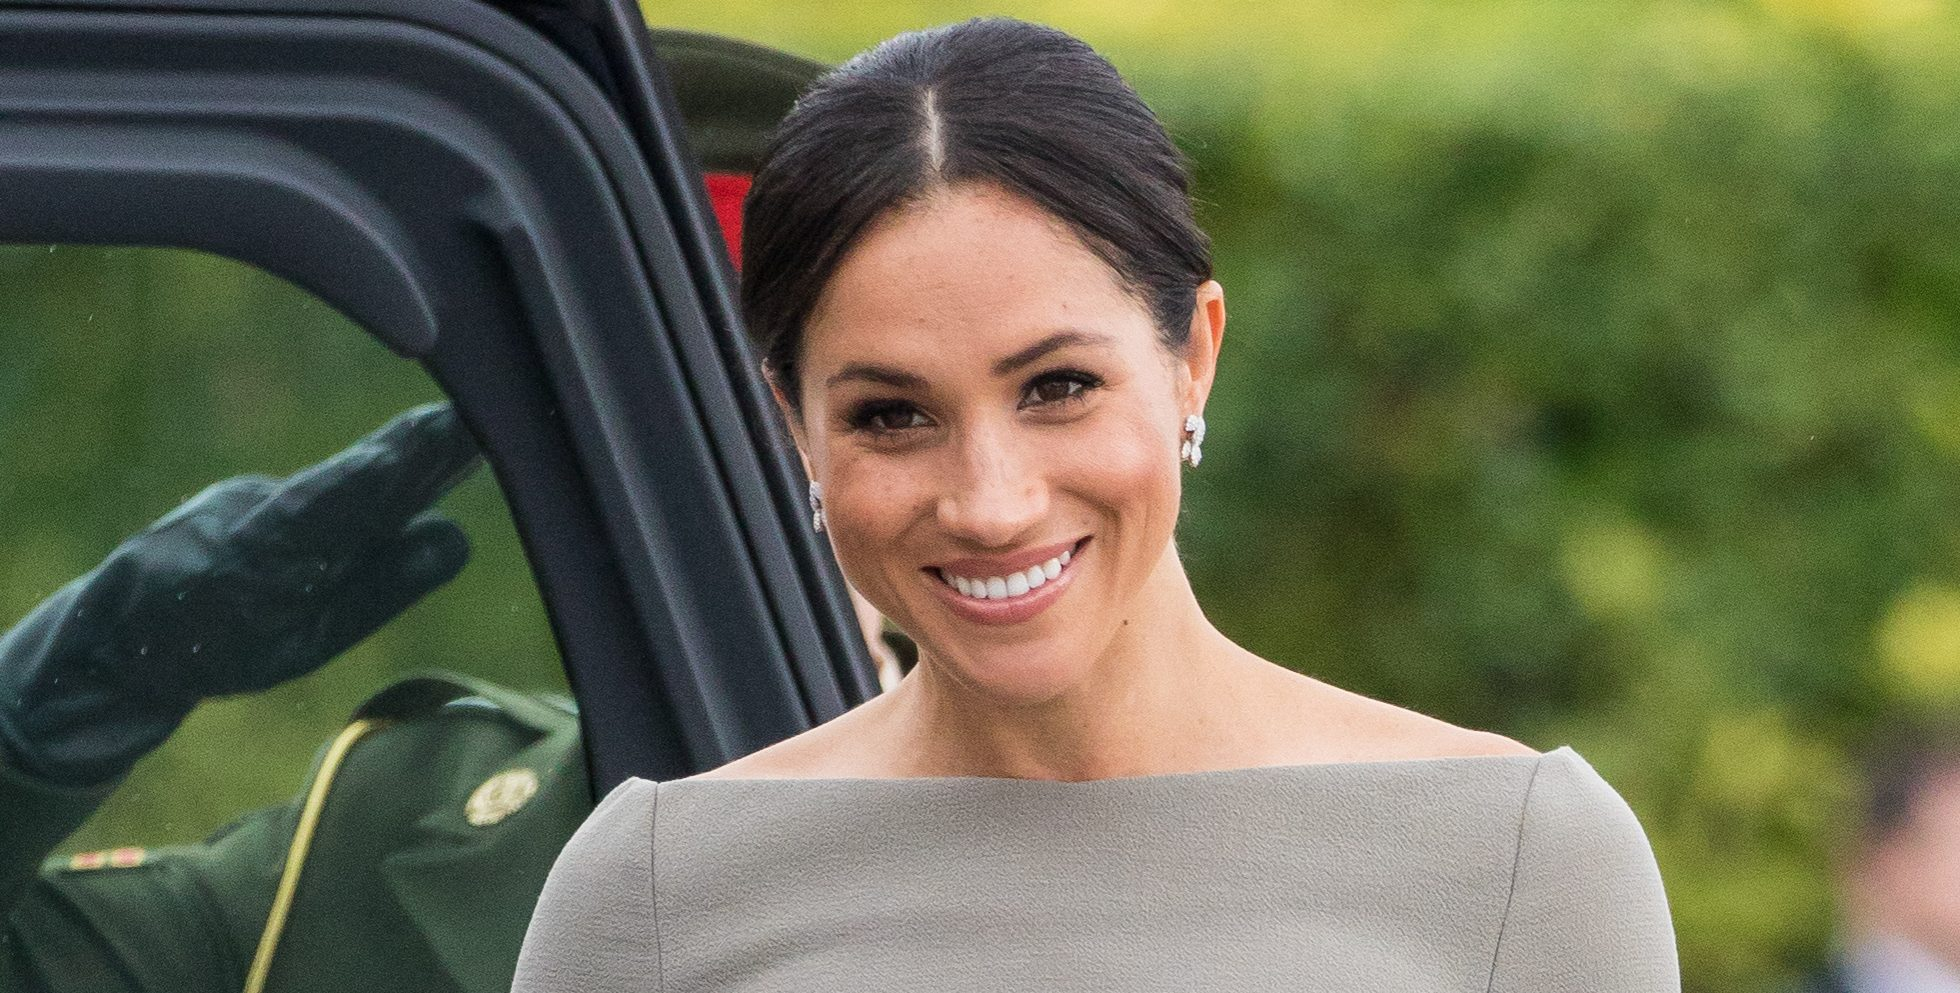 Meghan Markle is beaten by Kate Middleton in royal popularity poll